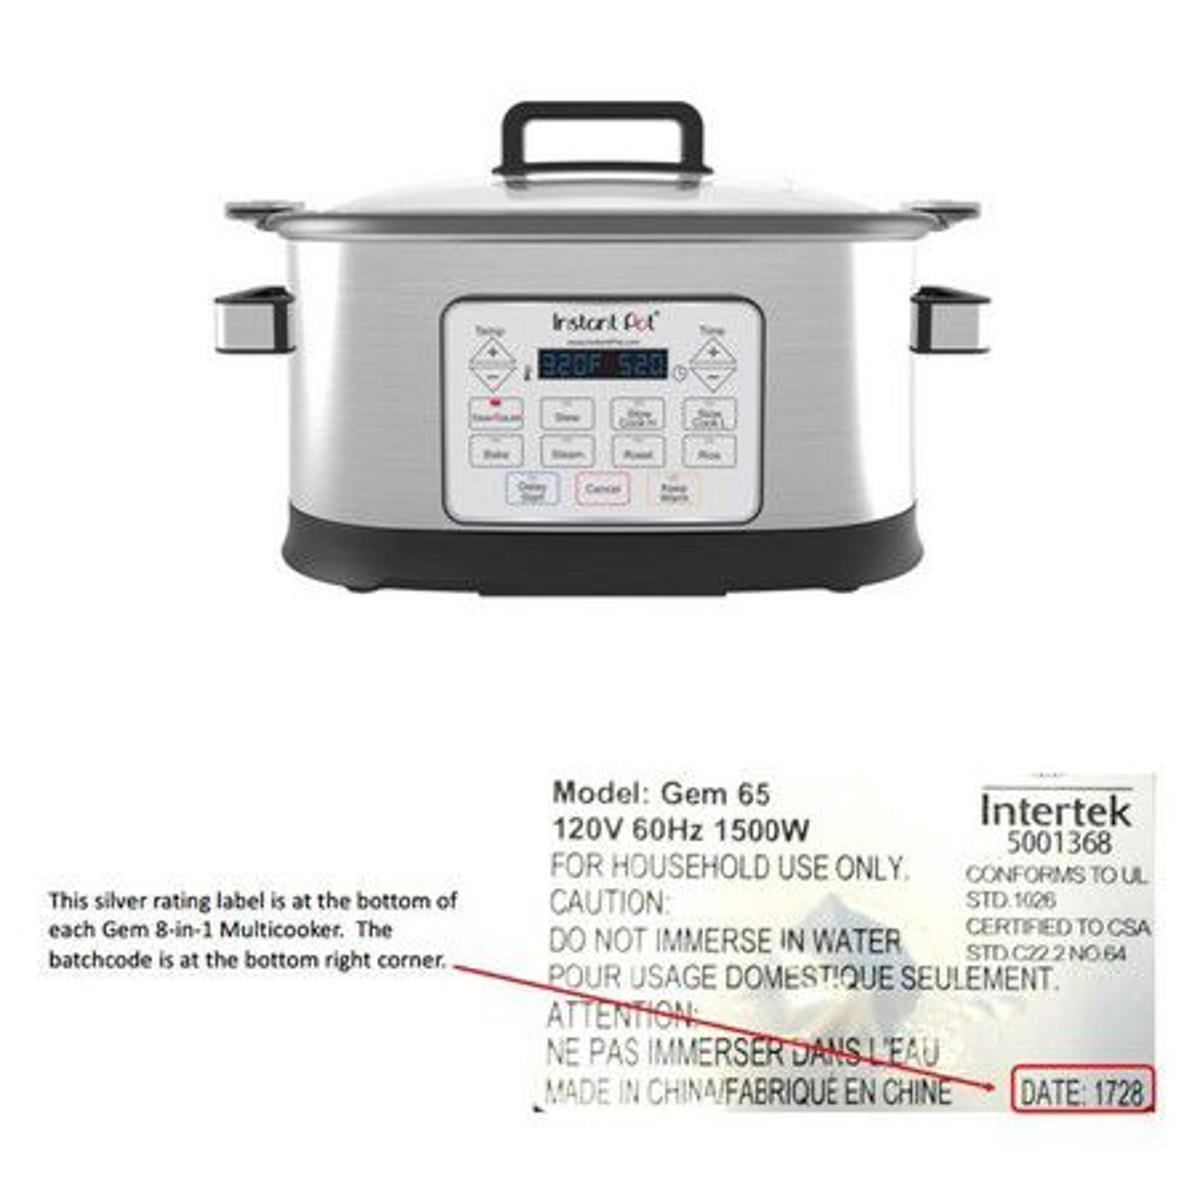 Fire hazard prompts recall of 104,000 slow cookers sold at Walmart